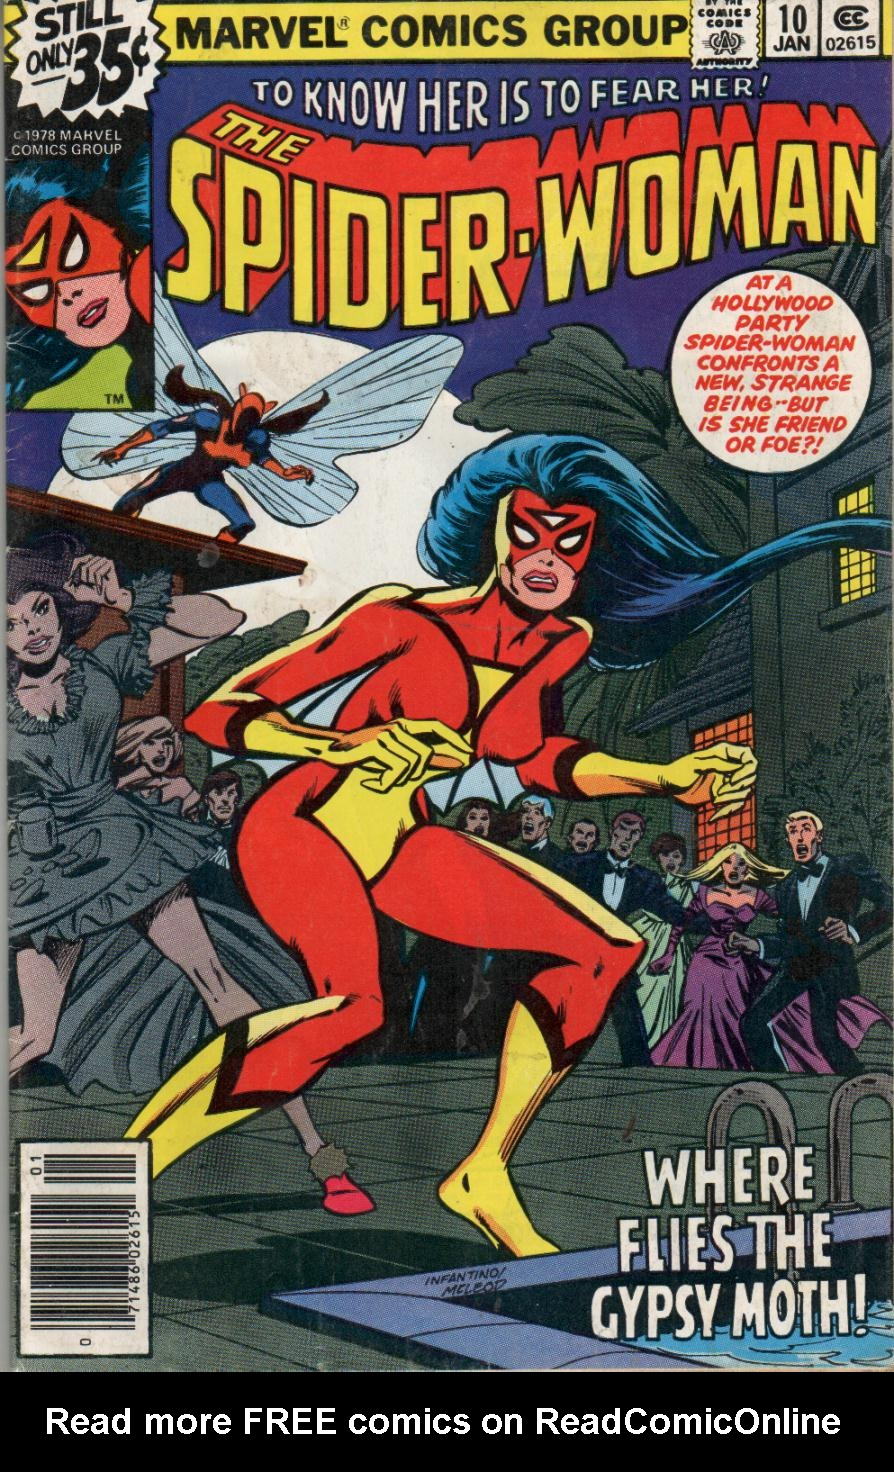 Spider-Woman (1978) #10 #41 - English 1